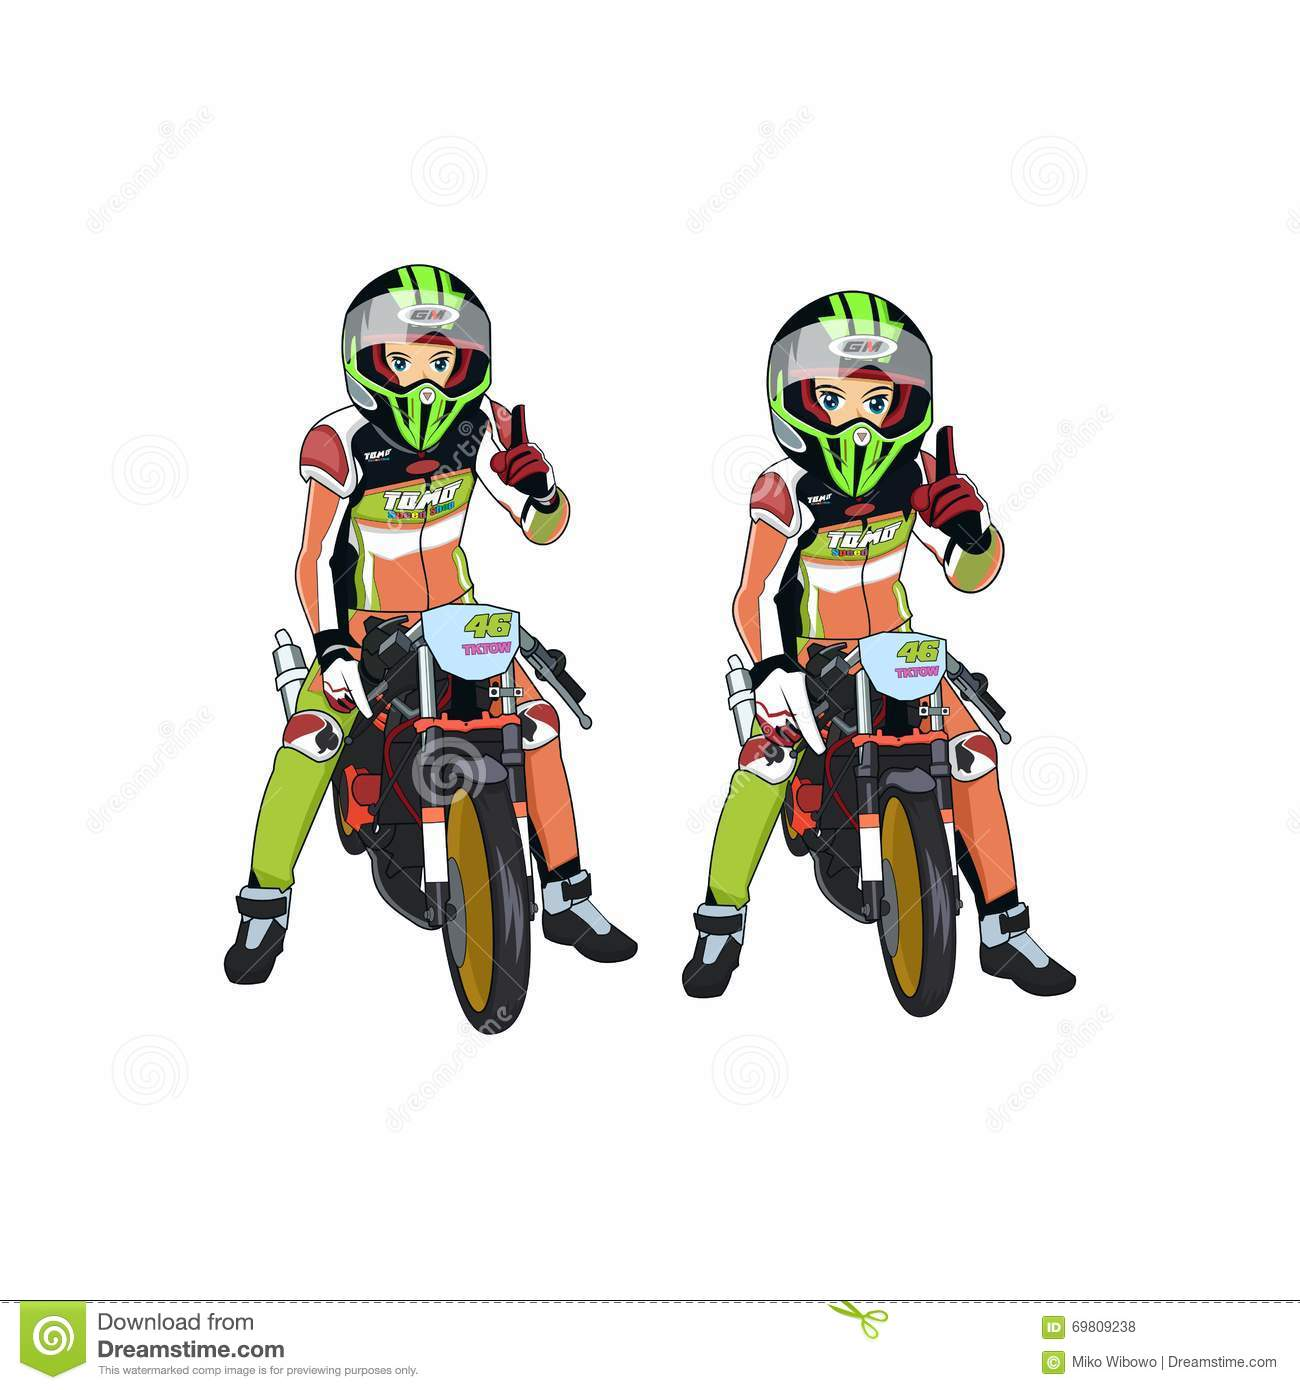 A vector illustration of motorcycle racing on drag race